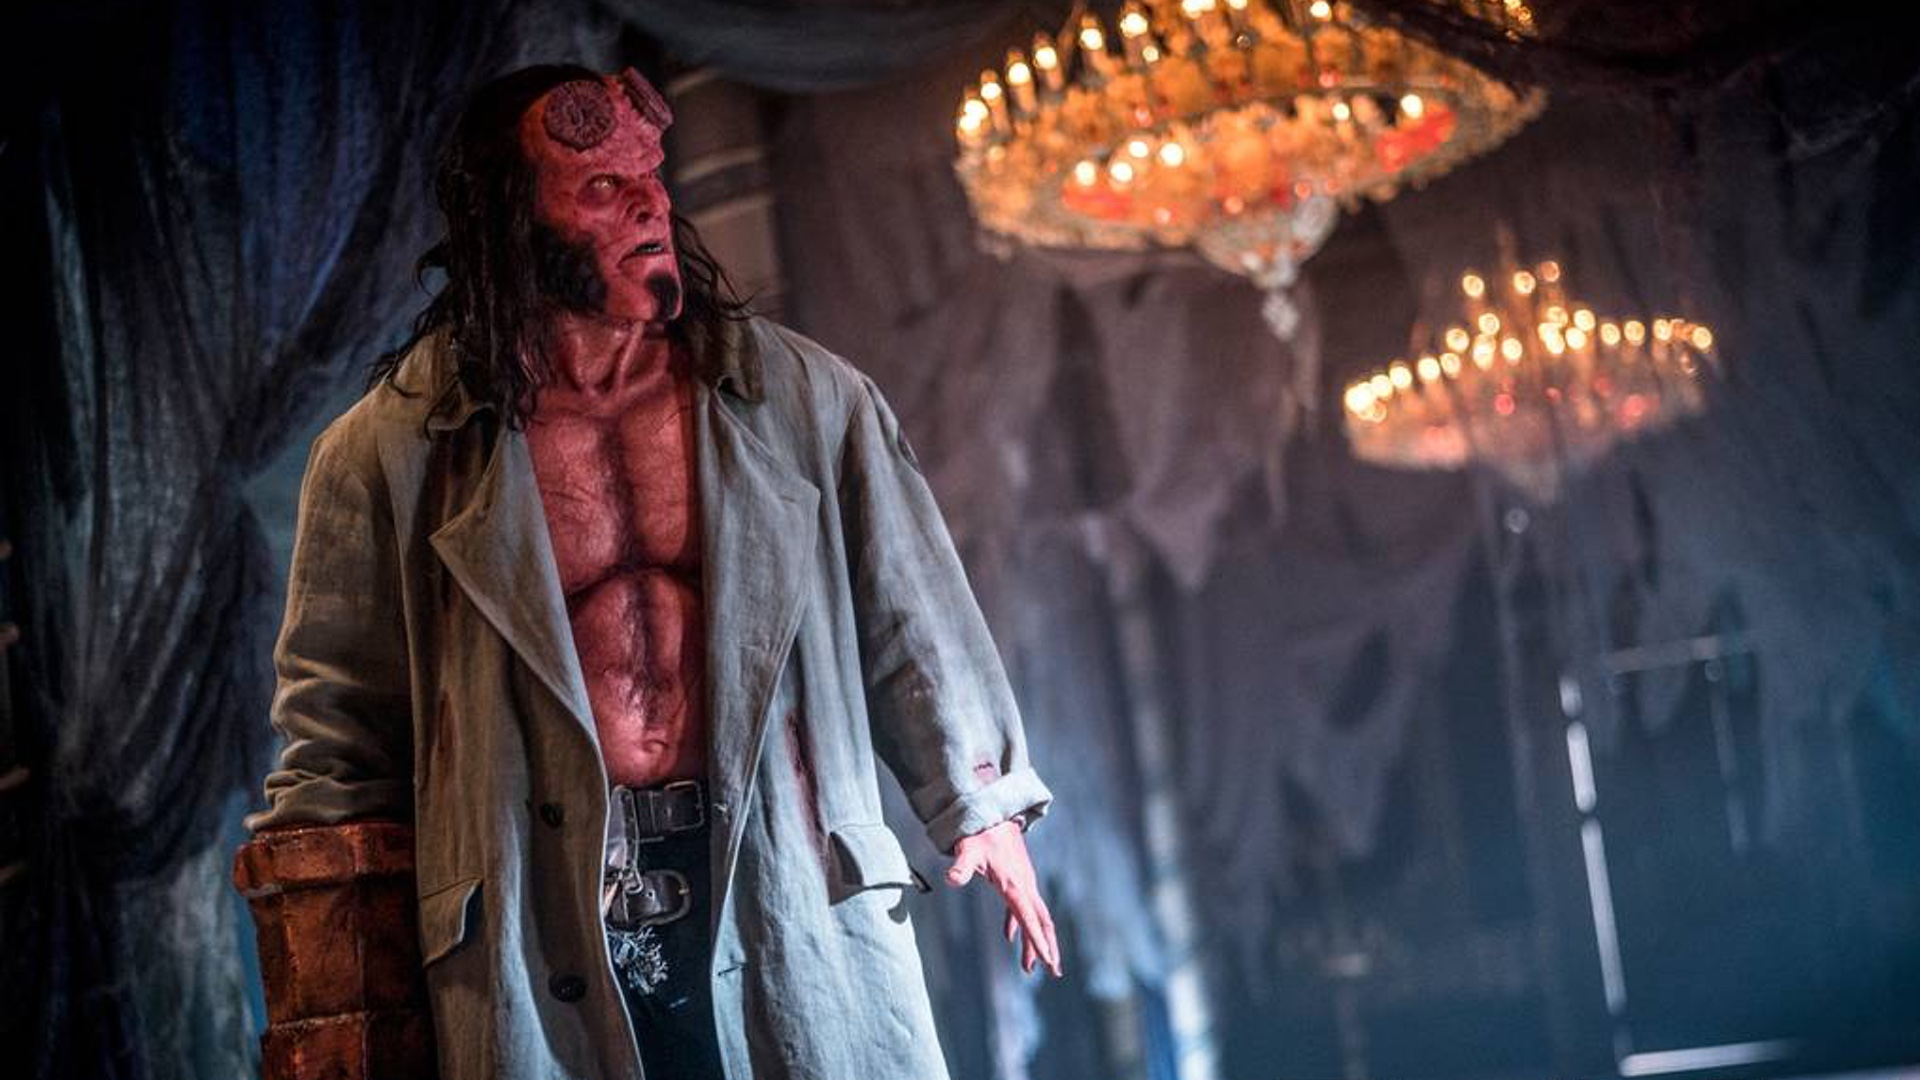 new-photo-from-hellboy-and-david-harbour-says-he-didnt-want-to-imitate-ron-perlman-social.jpg